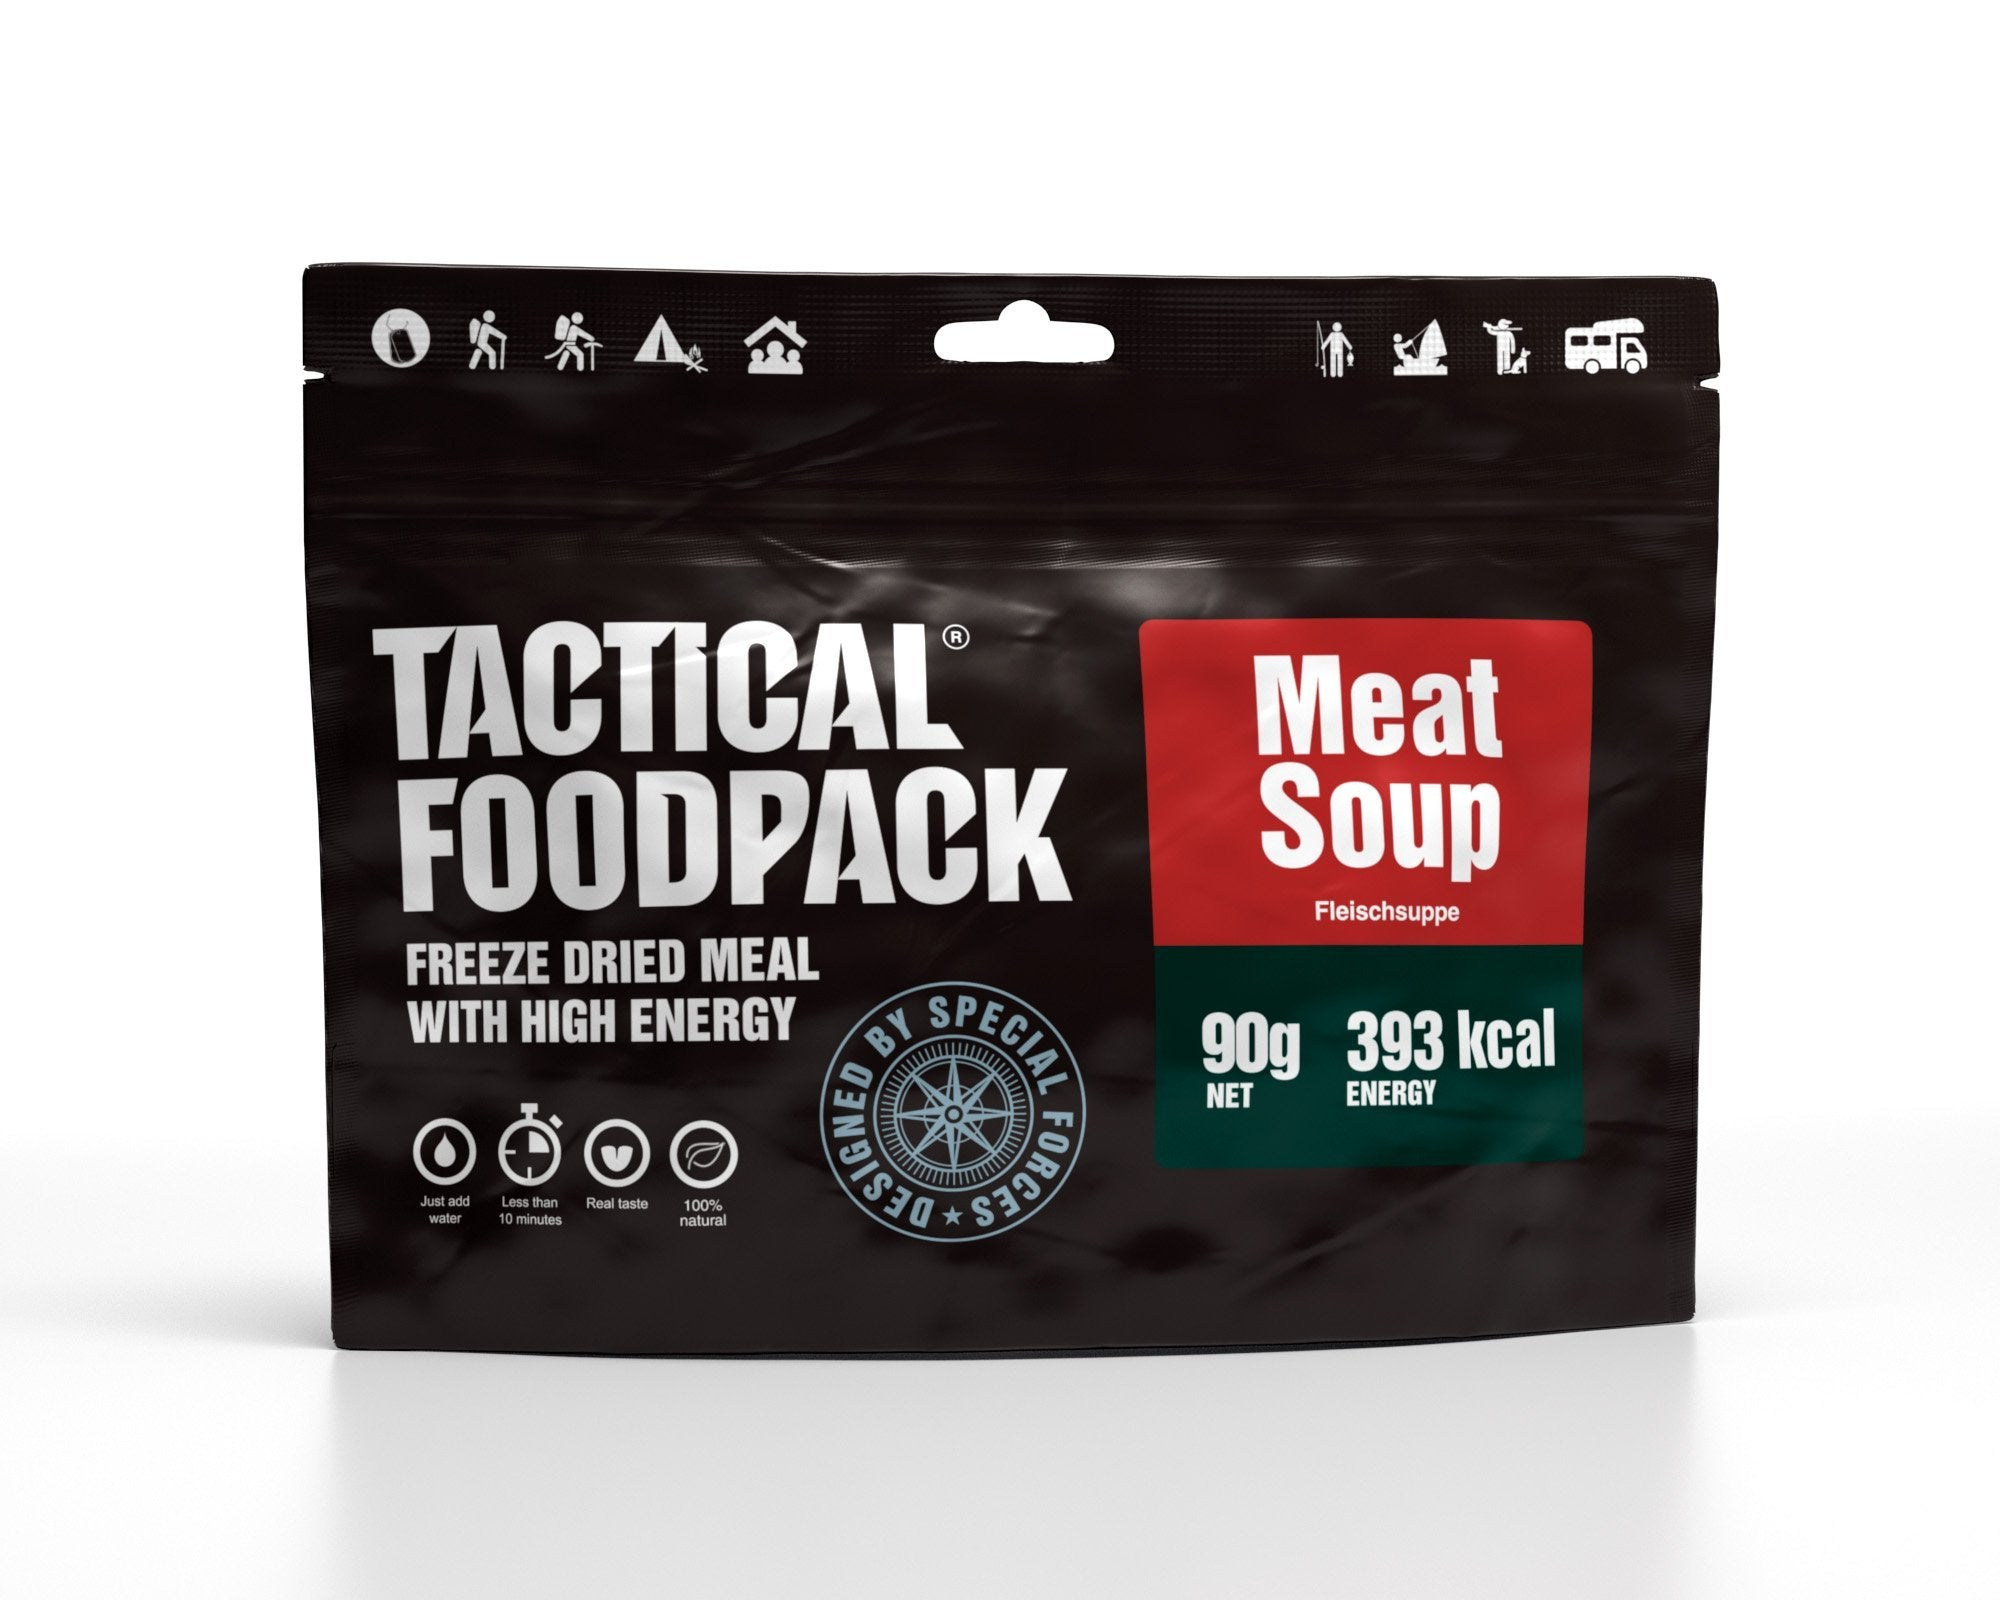 Tactical Foodpack Fleischsuppe